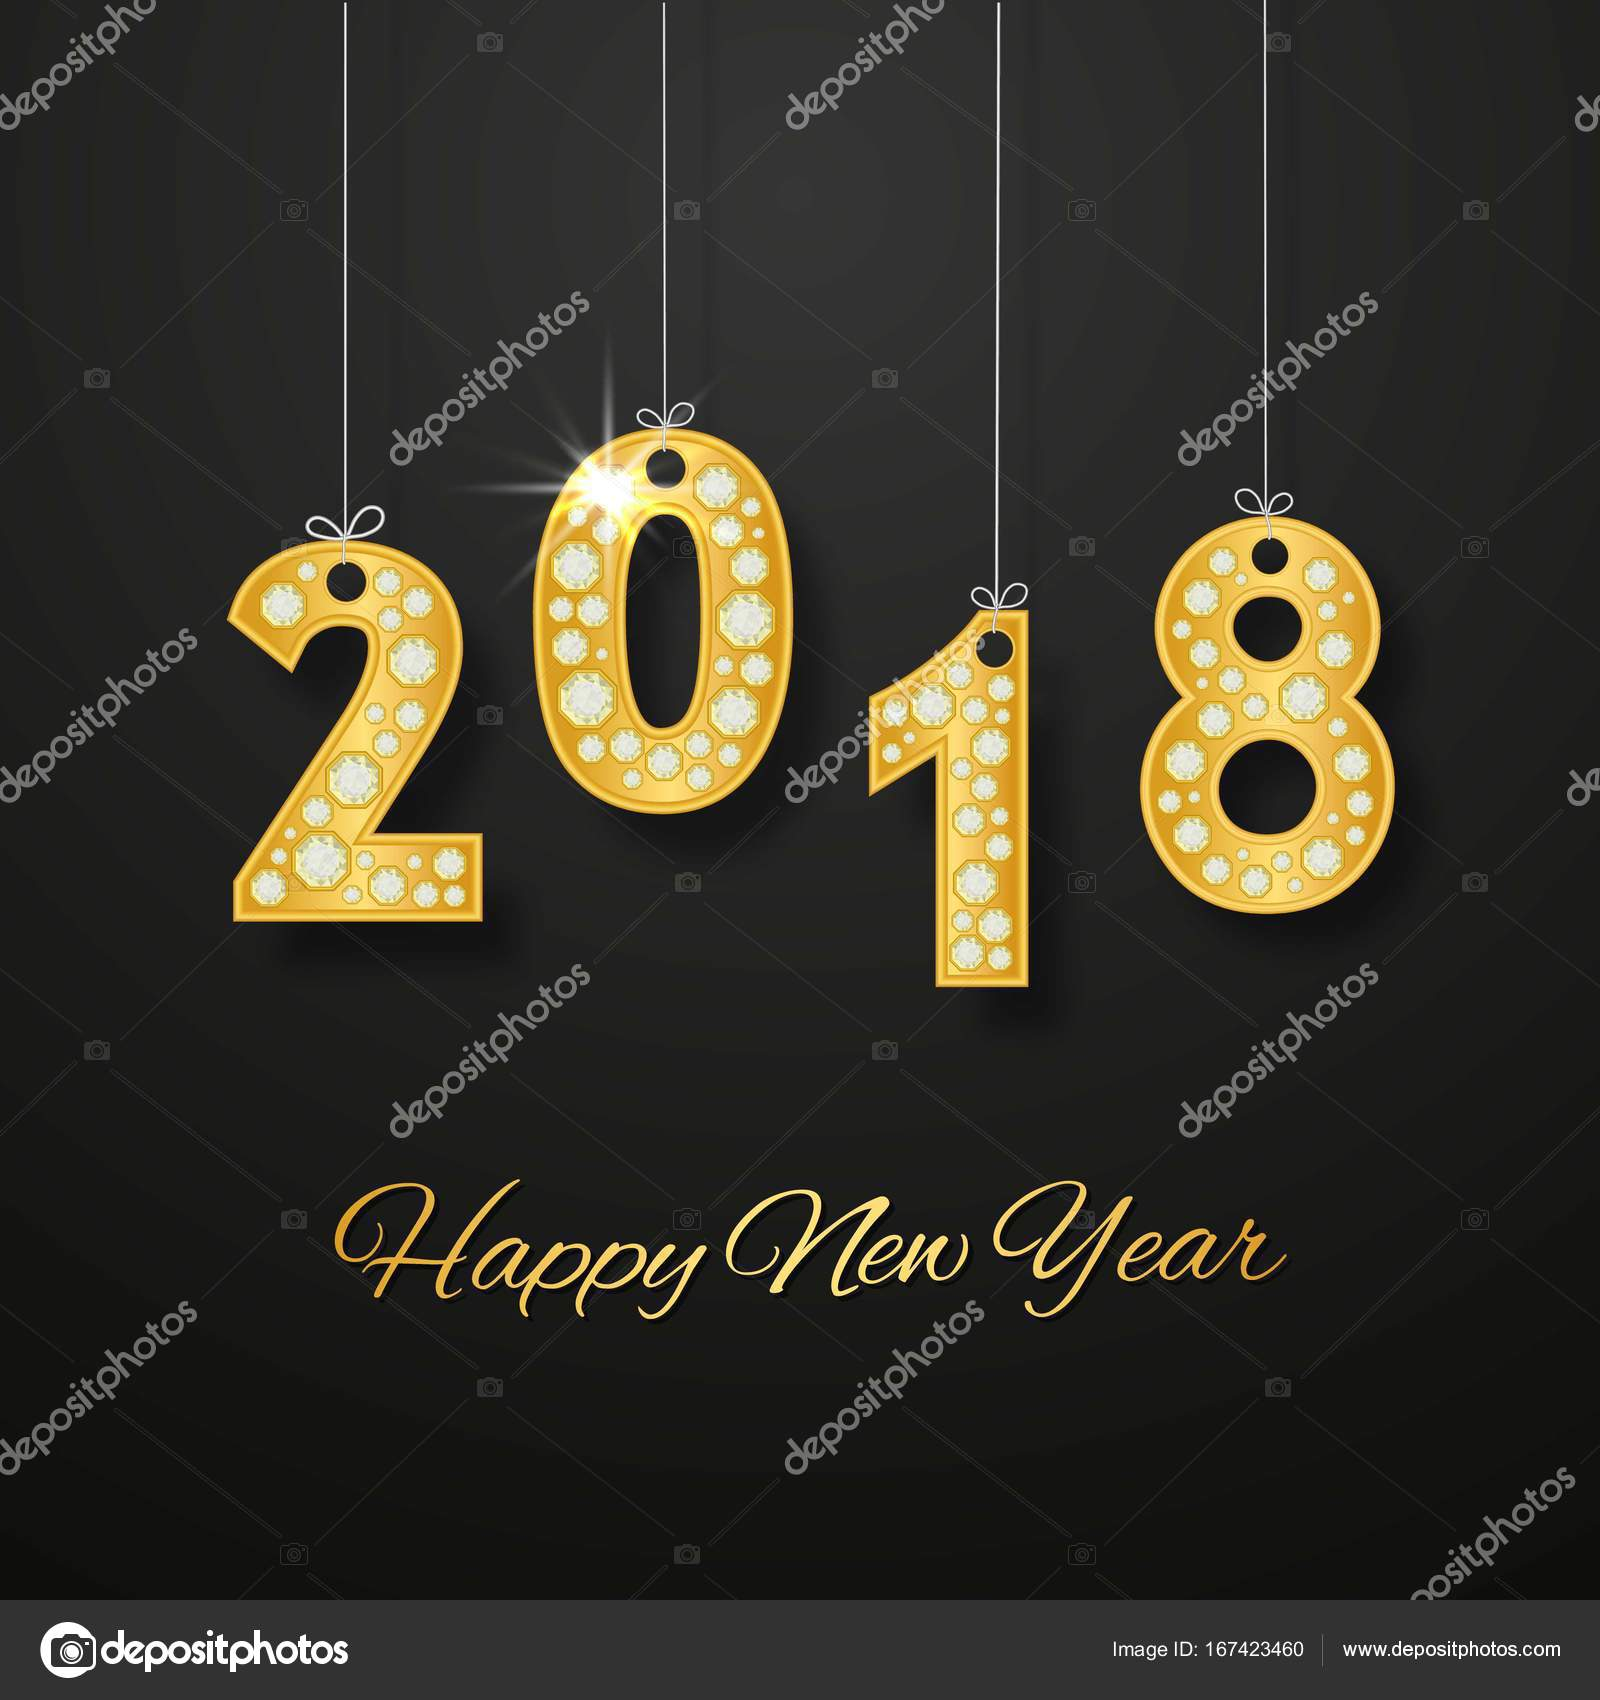 Happy new year 2018 greeting card design with golden number and happy new year 2018 greeting card design with golden number and diamonds vector illustration vector by infectsiyail m4hsunfo